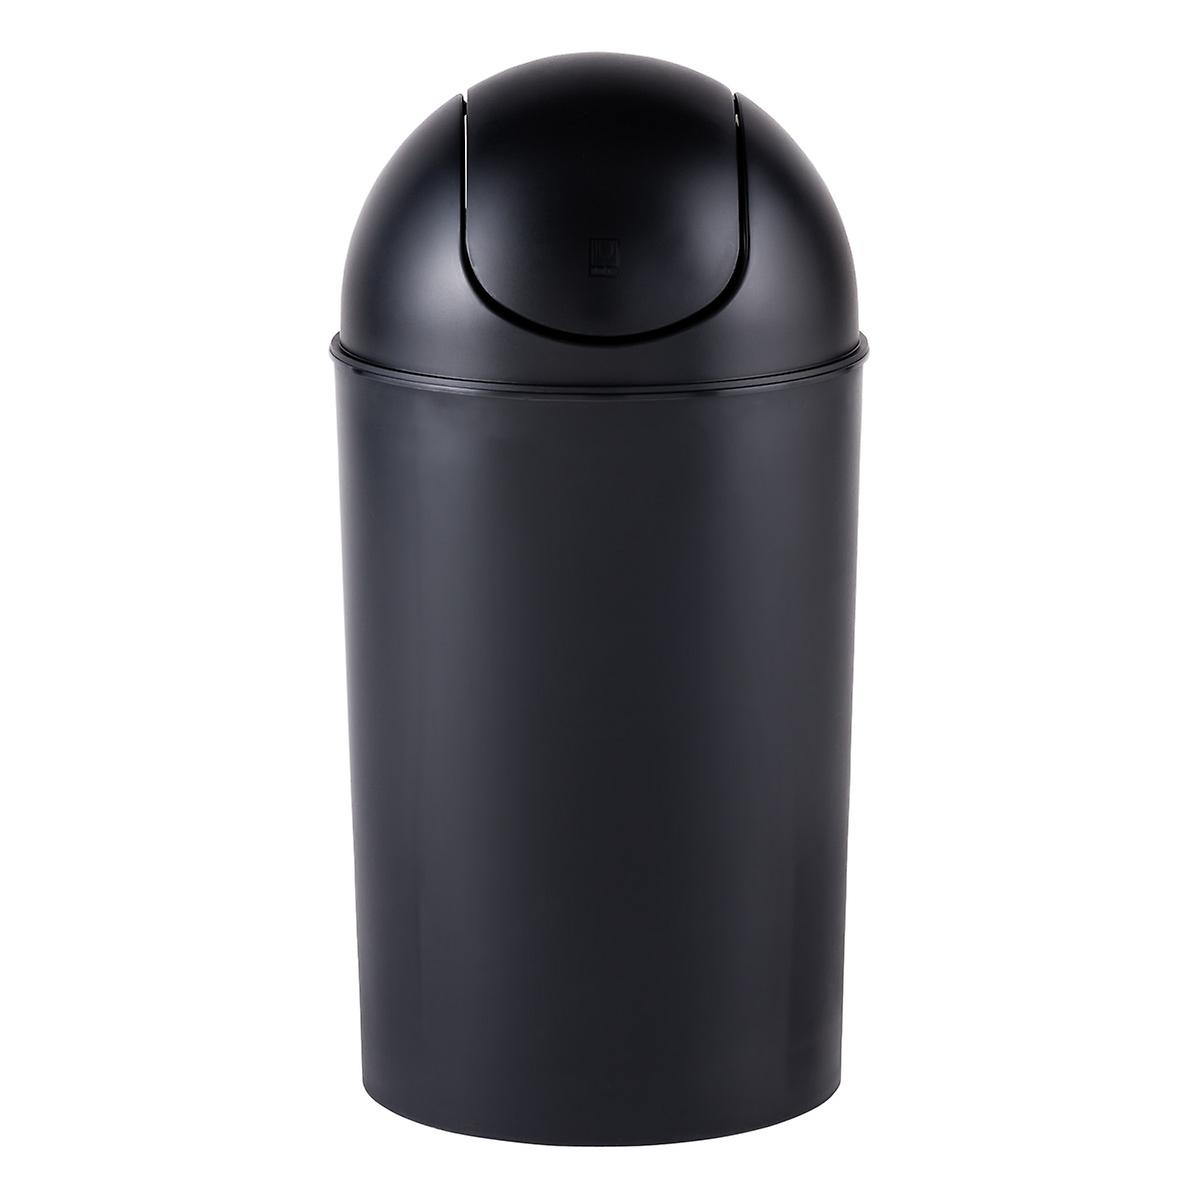 Umbra Black 10 Gal Swing Lid Grand Trash Can The Container Store